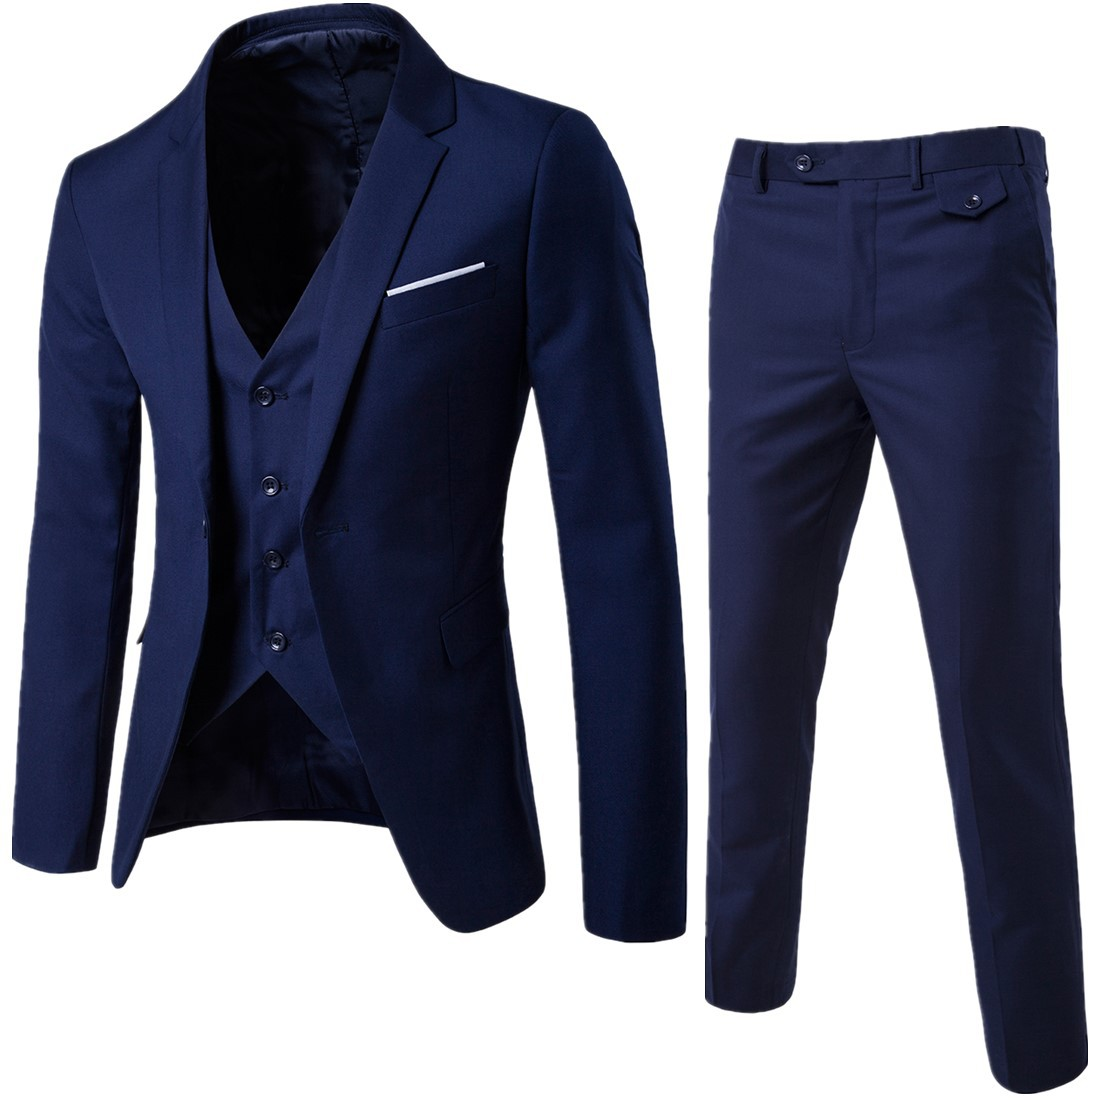 Suit Men Three-piece Set Korean-style Youth Handsome British Style Slim Fit Suit Best Man Groom Marriage Formal Dress